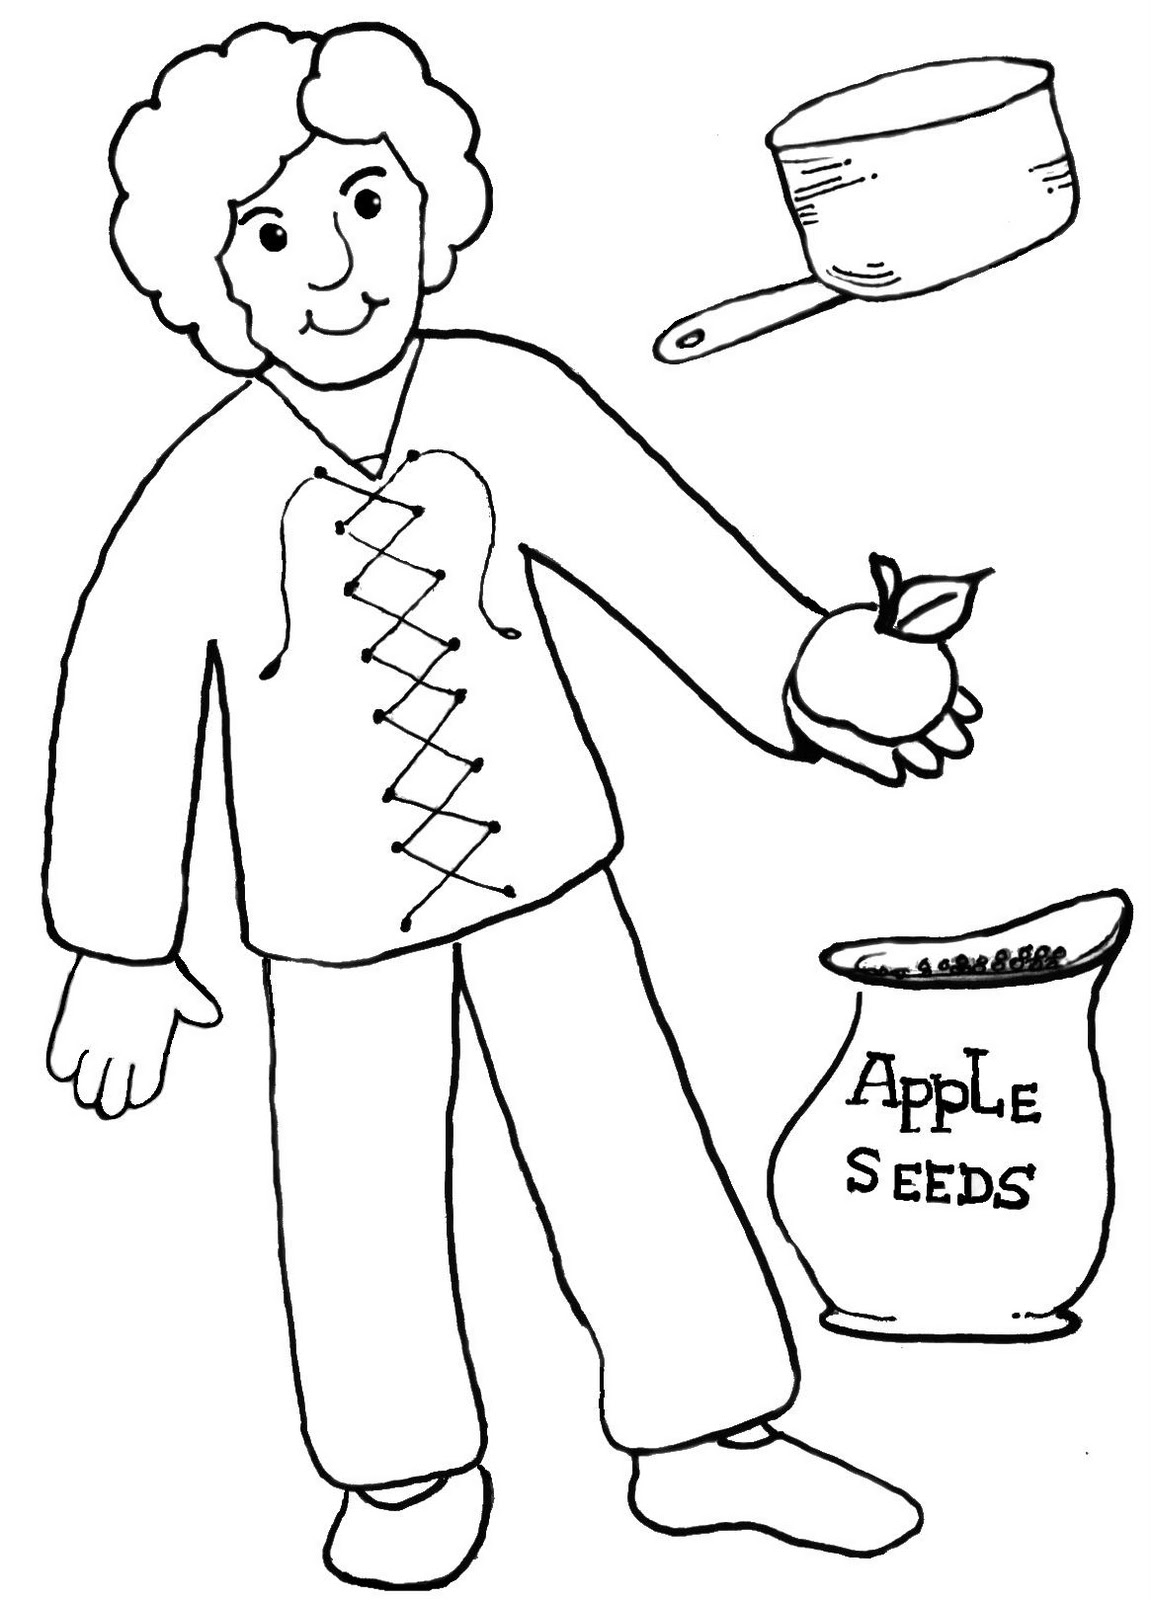 Coloring Pages Johnny Appleseed : Clip art of johnny appleseed clipart best